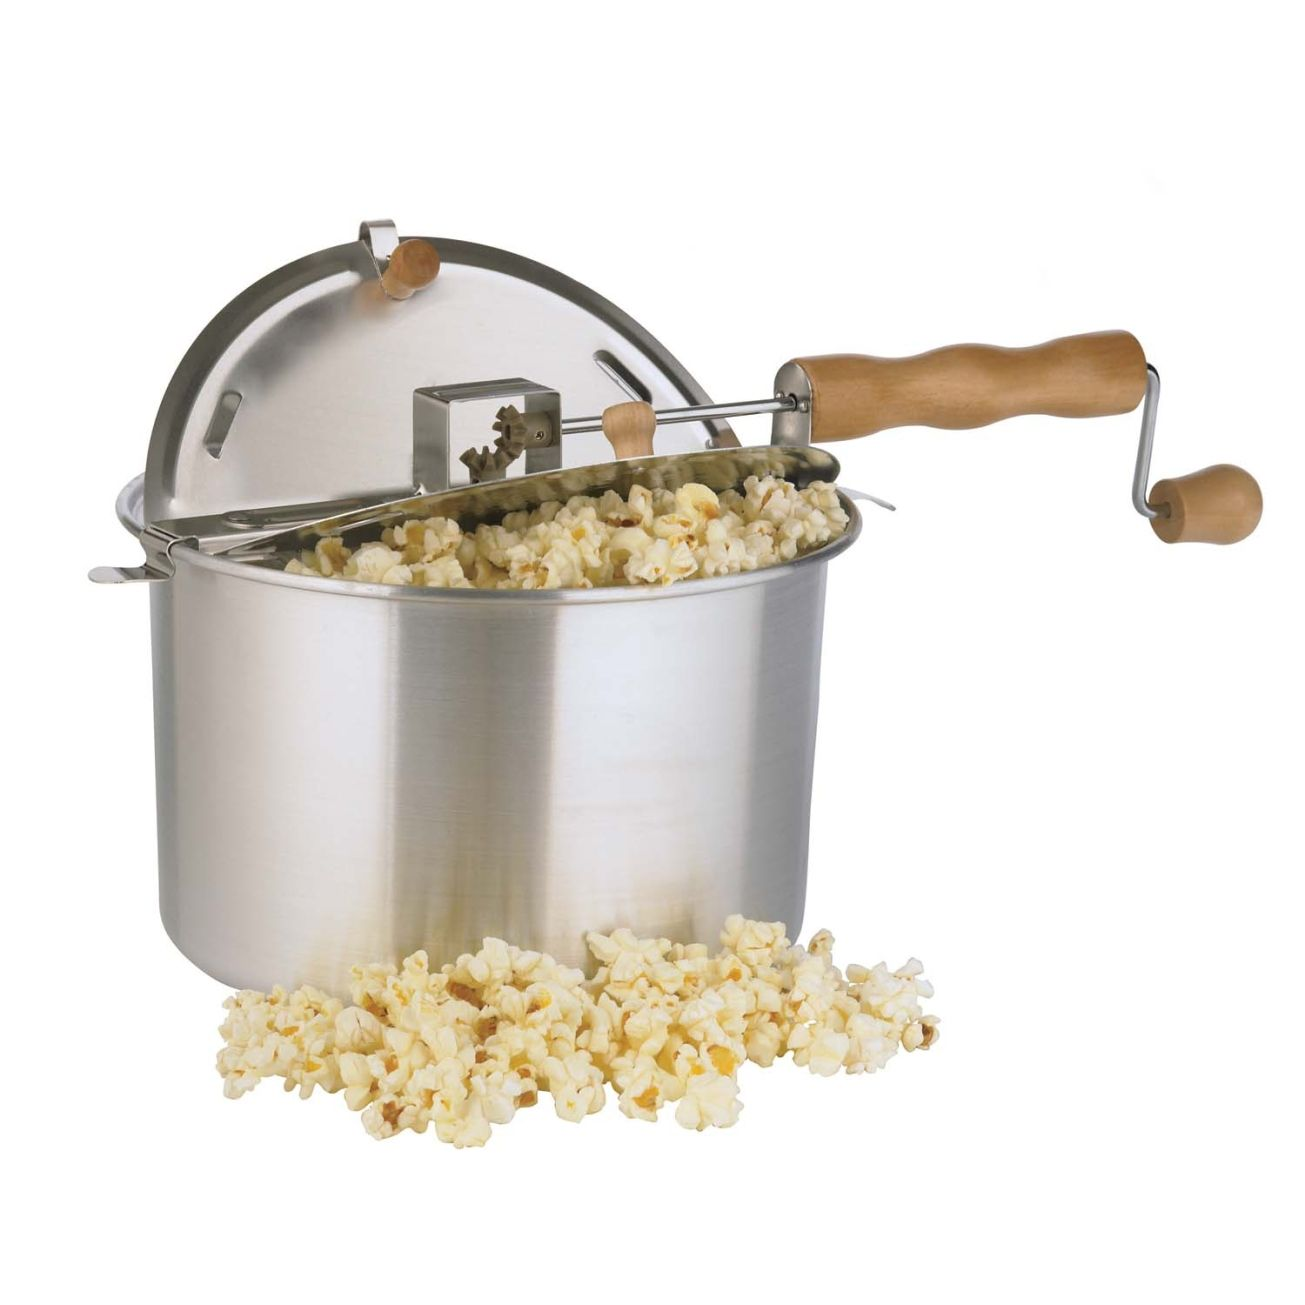 "<p><em><strong> $30, <a href=""http://www.cabelas.com/product/Cabelas-Whirley-Pop-Popcorn-Maker/1421077.uts?productVariantId=3294496&srccode=cii_17588969&cpncode=42-109040954-2&WT.tsrc=CSE&WT.mc_id=GoogleProductAds&WT.z_mc_id1=03545570&rid=20 "">cabelas.com</a> </strong></em></p><p> No movie night is complete without a bowl full of fresh, hot, buttery popcorn. Cranking this unit's handle rotates the stainless steel rod, stirring kernels for optimum results. This popcorn maker prepares up to 6 quarts in just three minutes. </p>"